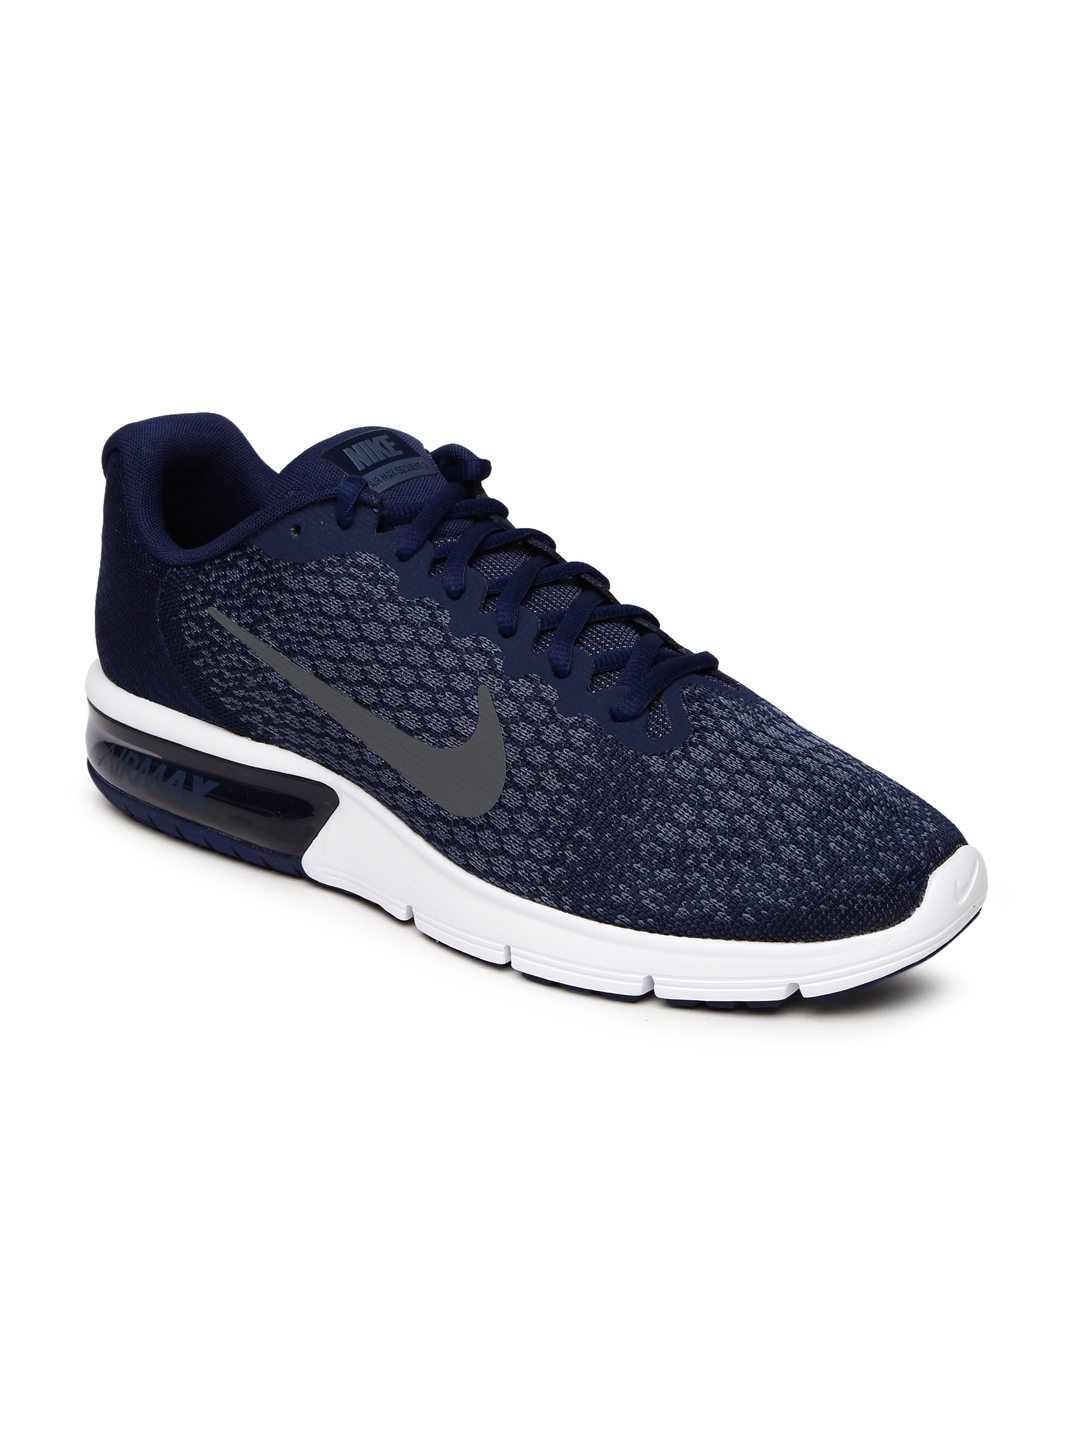 Buy Nike Men Blue AIR MAX SEQUENT 2 Running Shoes - Sports Shoes for ... e34229b9aa